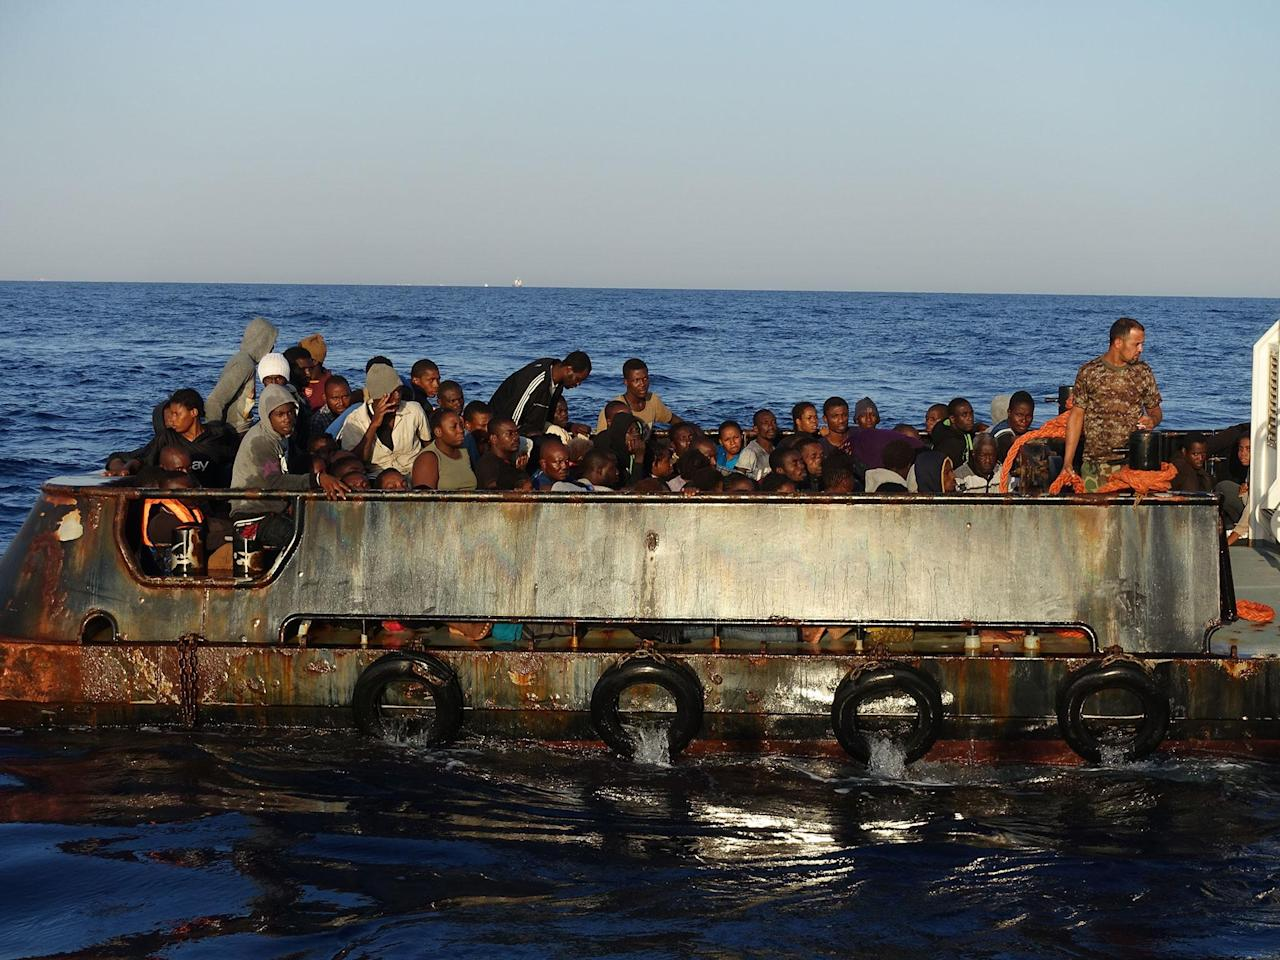 Harrowing footage exposes 'inhuman' treatment of refugees trapped in Libya